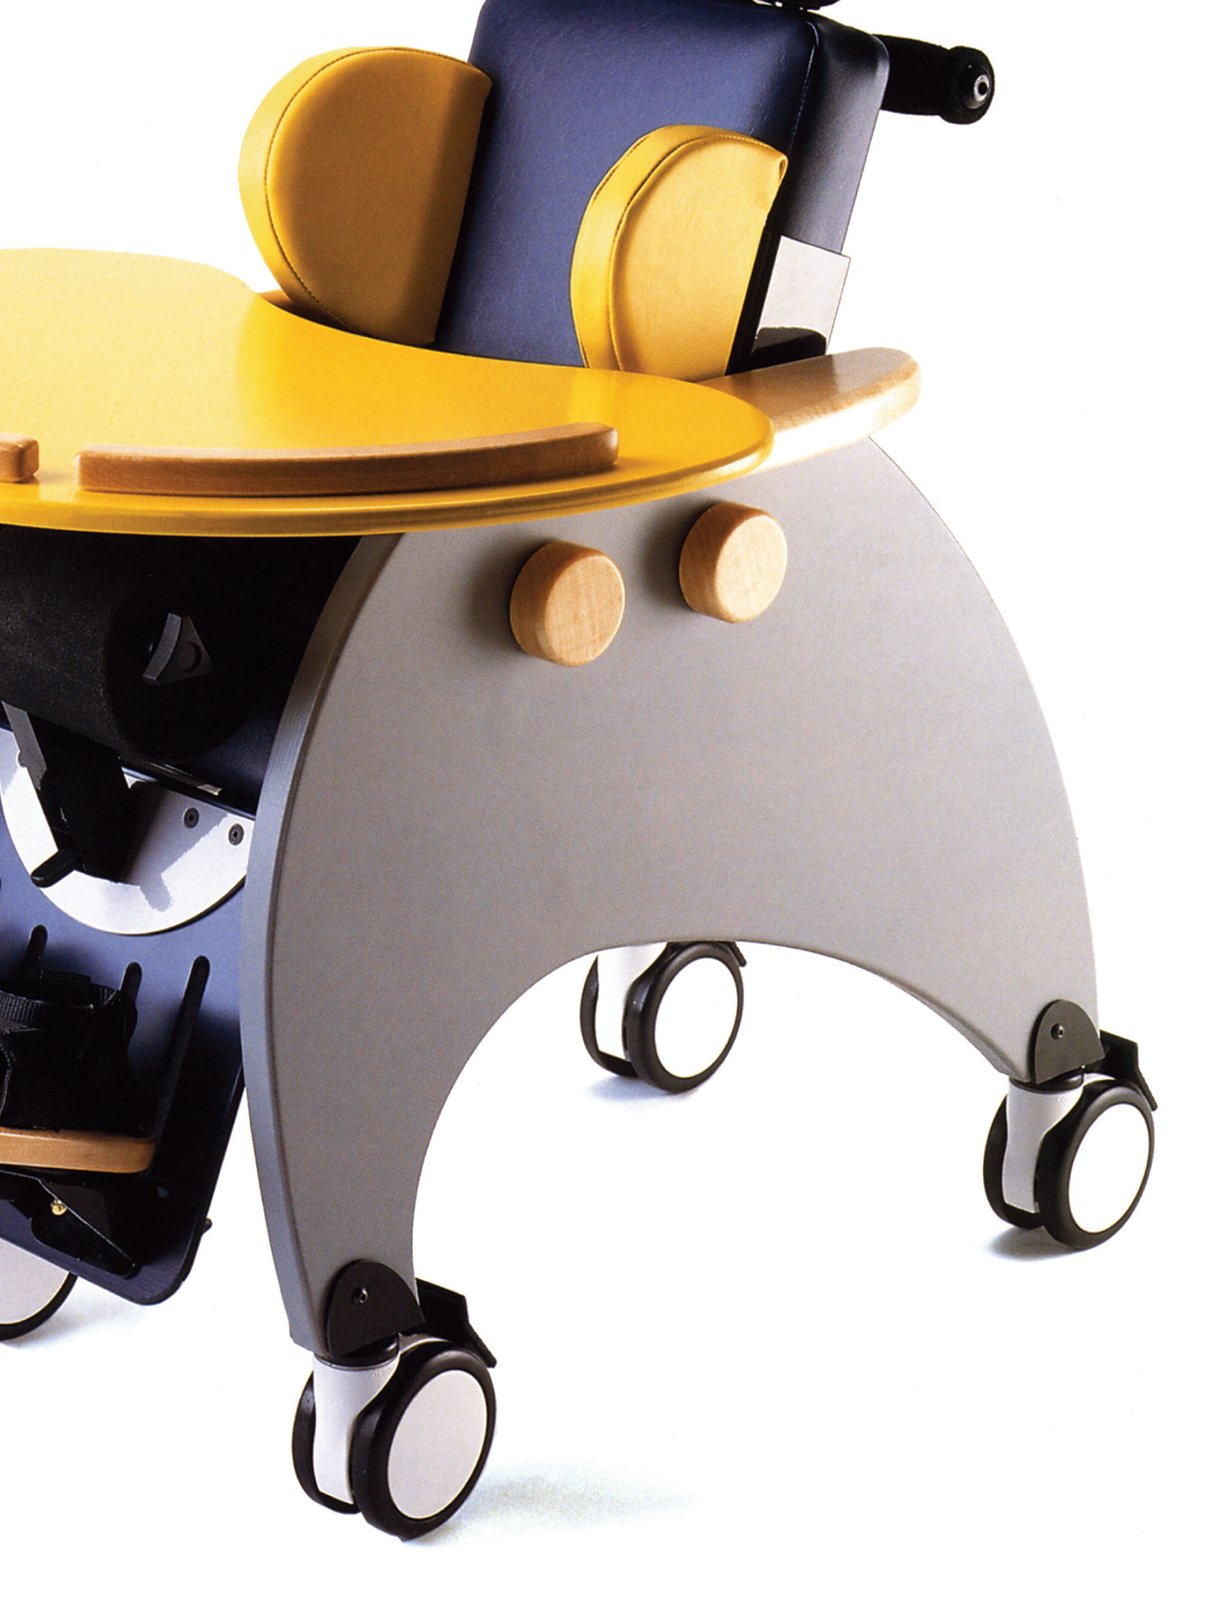 James Leckey Design's Woosh Chair is designed for children with cerebral palsy.  Photo 2 of 4 in Eight Questions for Graham Pullin